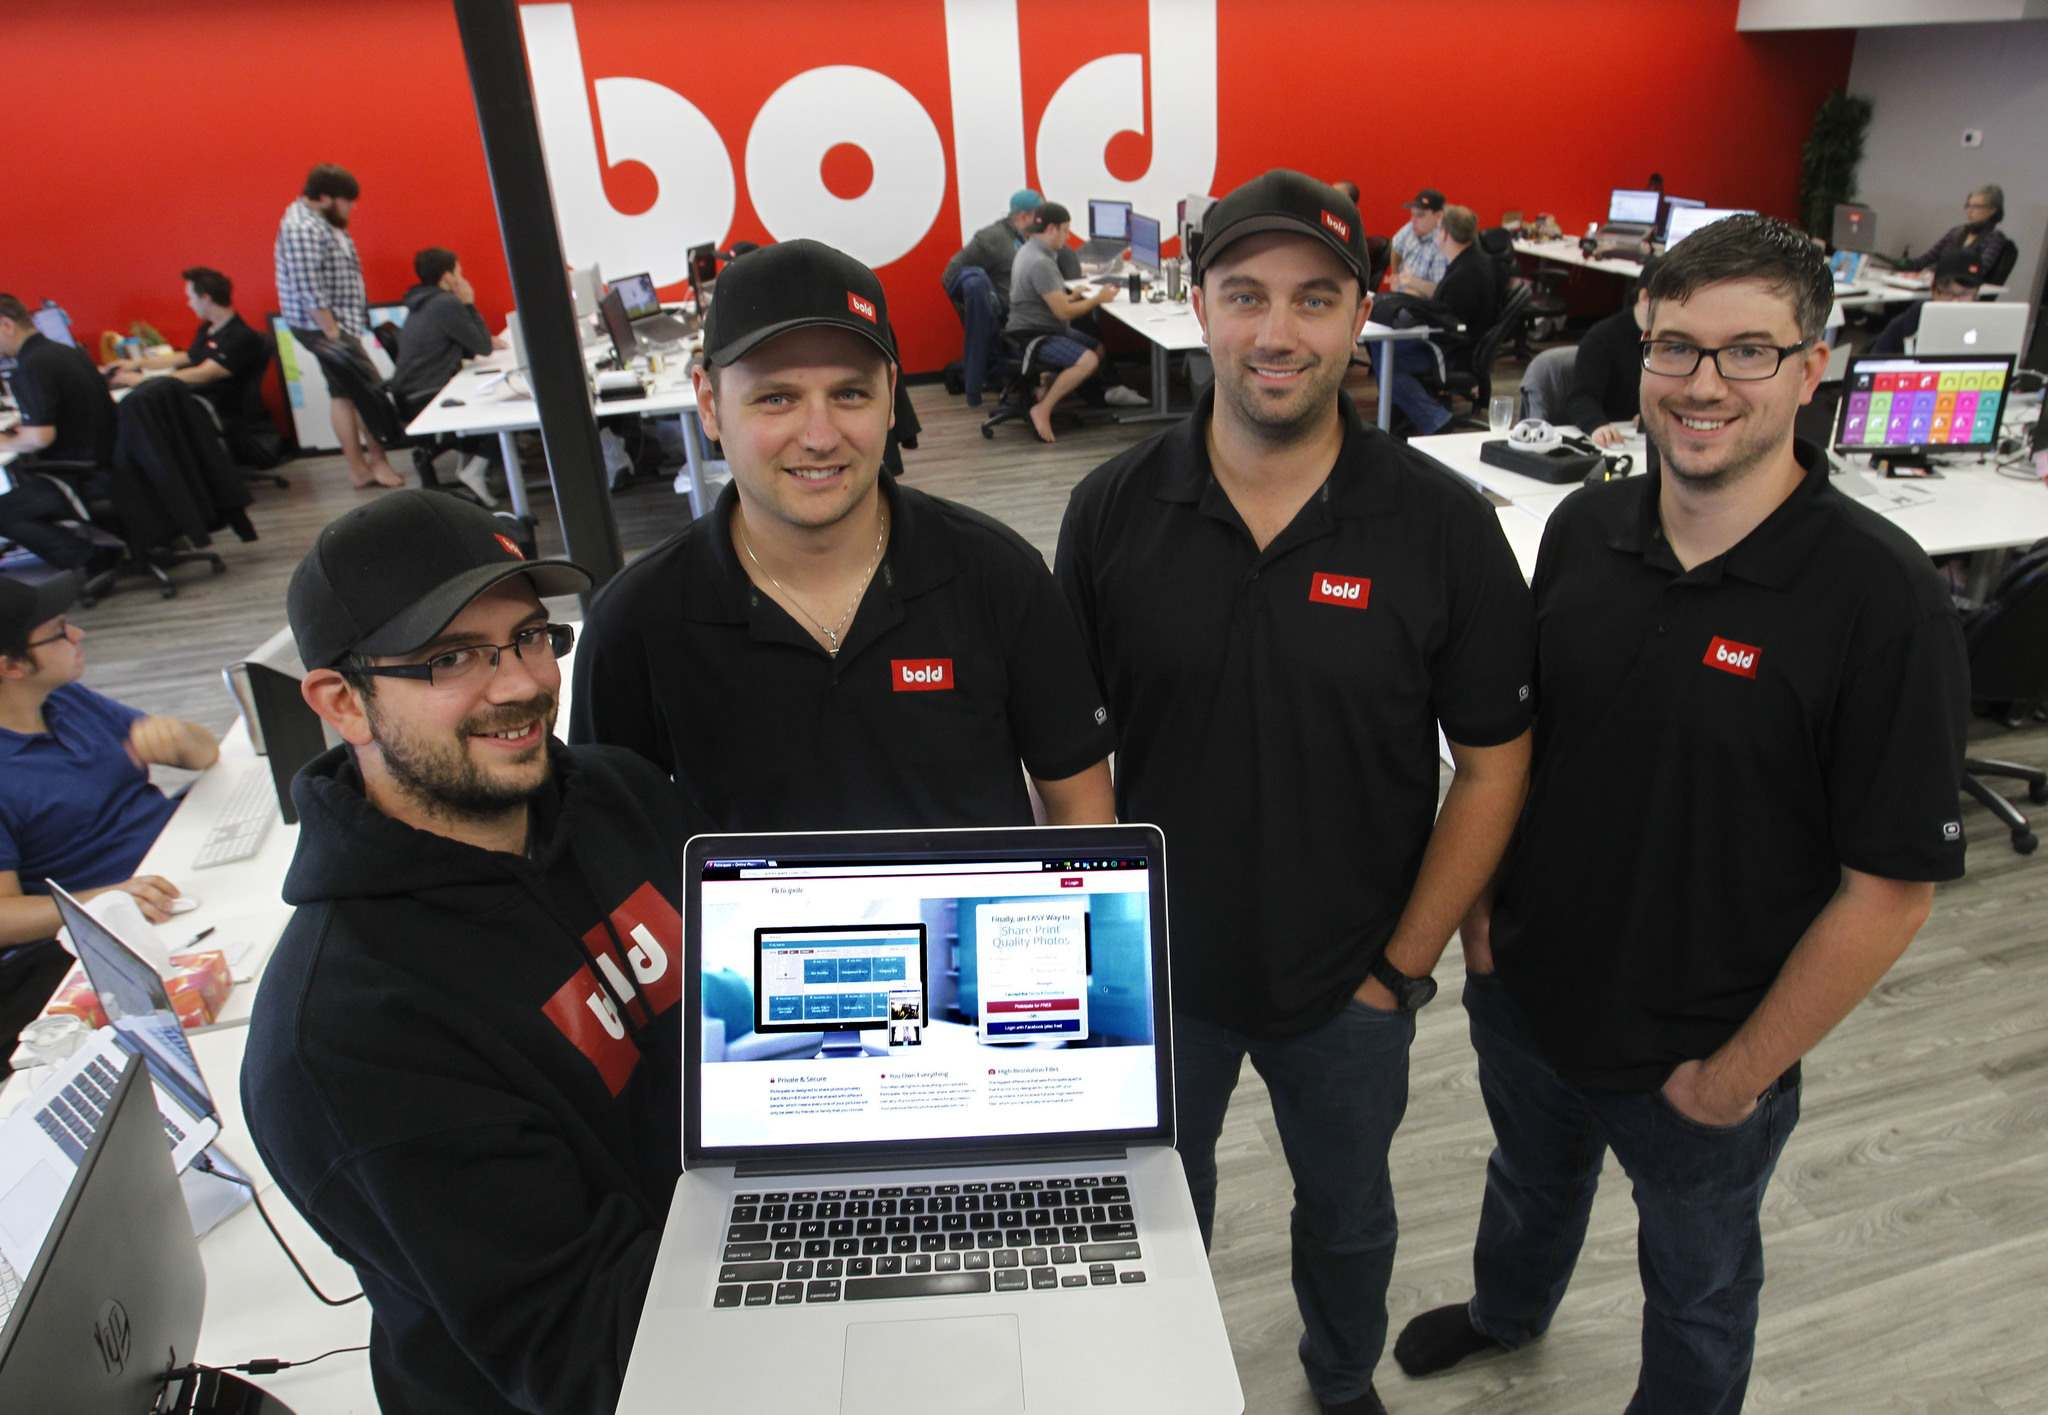 WAYNE GLOWACKI / WINNIPEG FREE PRESS</p><p>Bold Innovation Group partners from left, Eric Boisjoli, Stefan Maynard, Jason Myers and Yvan Boisjoli will be launching their photo-sharing social media platform Picticipate.</p>